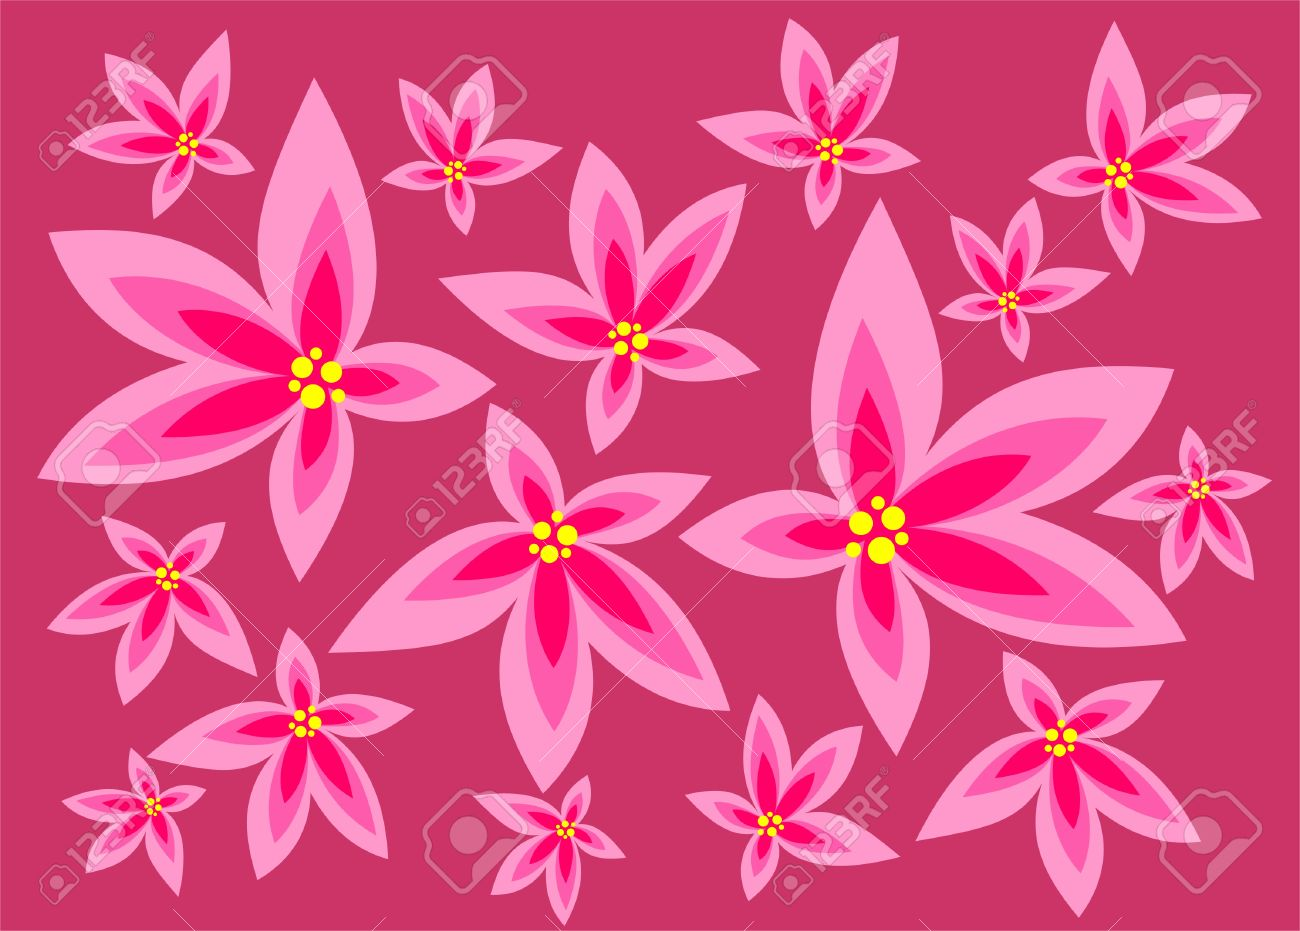 Light pink flowers on a dark pink background royalty free cliparts light pink flowers on a dark pink background stock vector 2732479 mightylinksfo